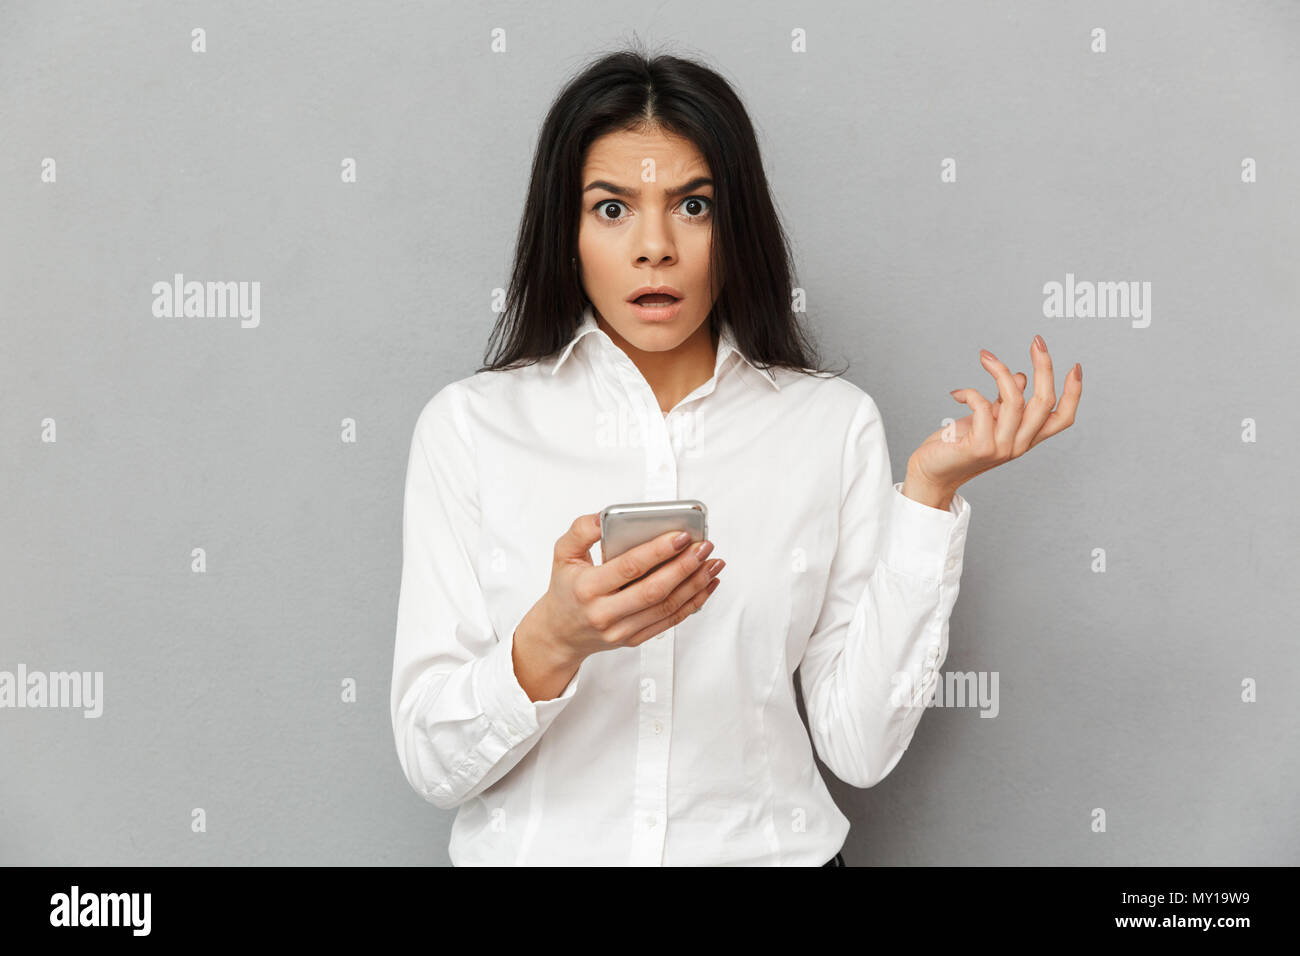 Photo of shocked or outraged woman 30s in formal wear looking on camera while holding smartphone in hand isolated over gray background - Stock Image